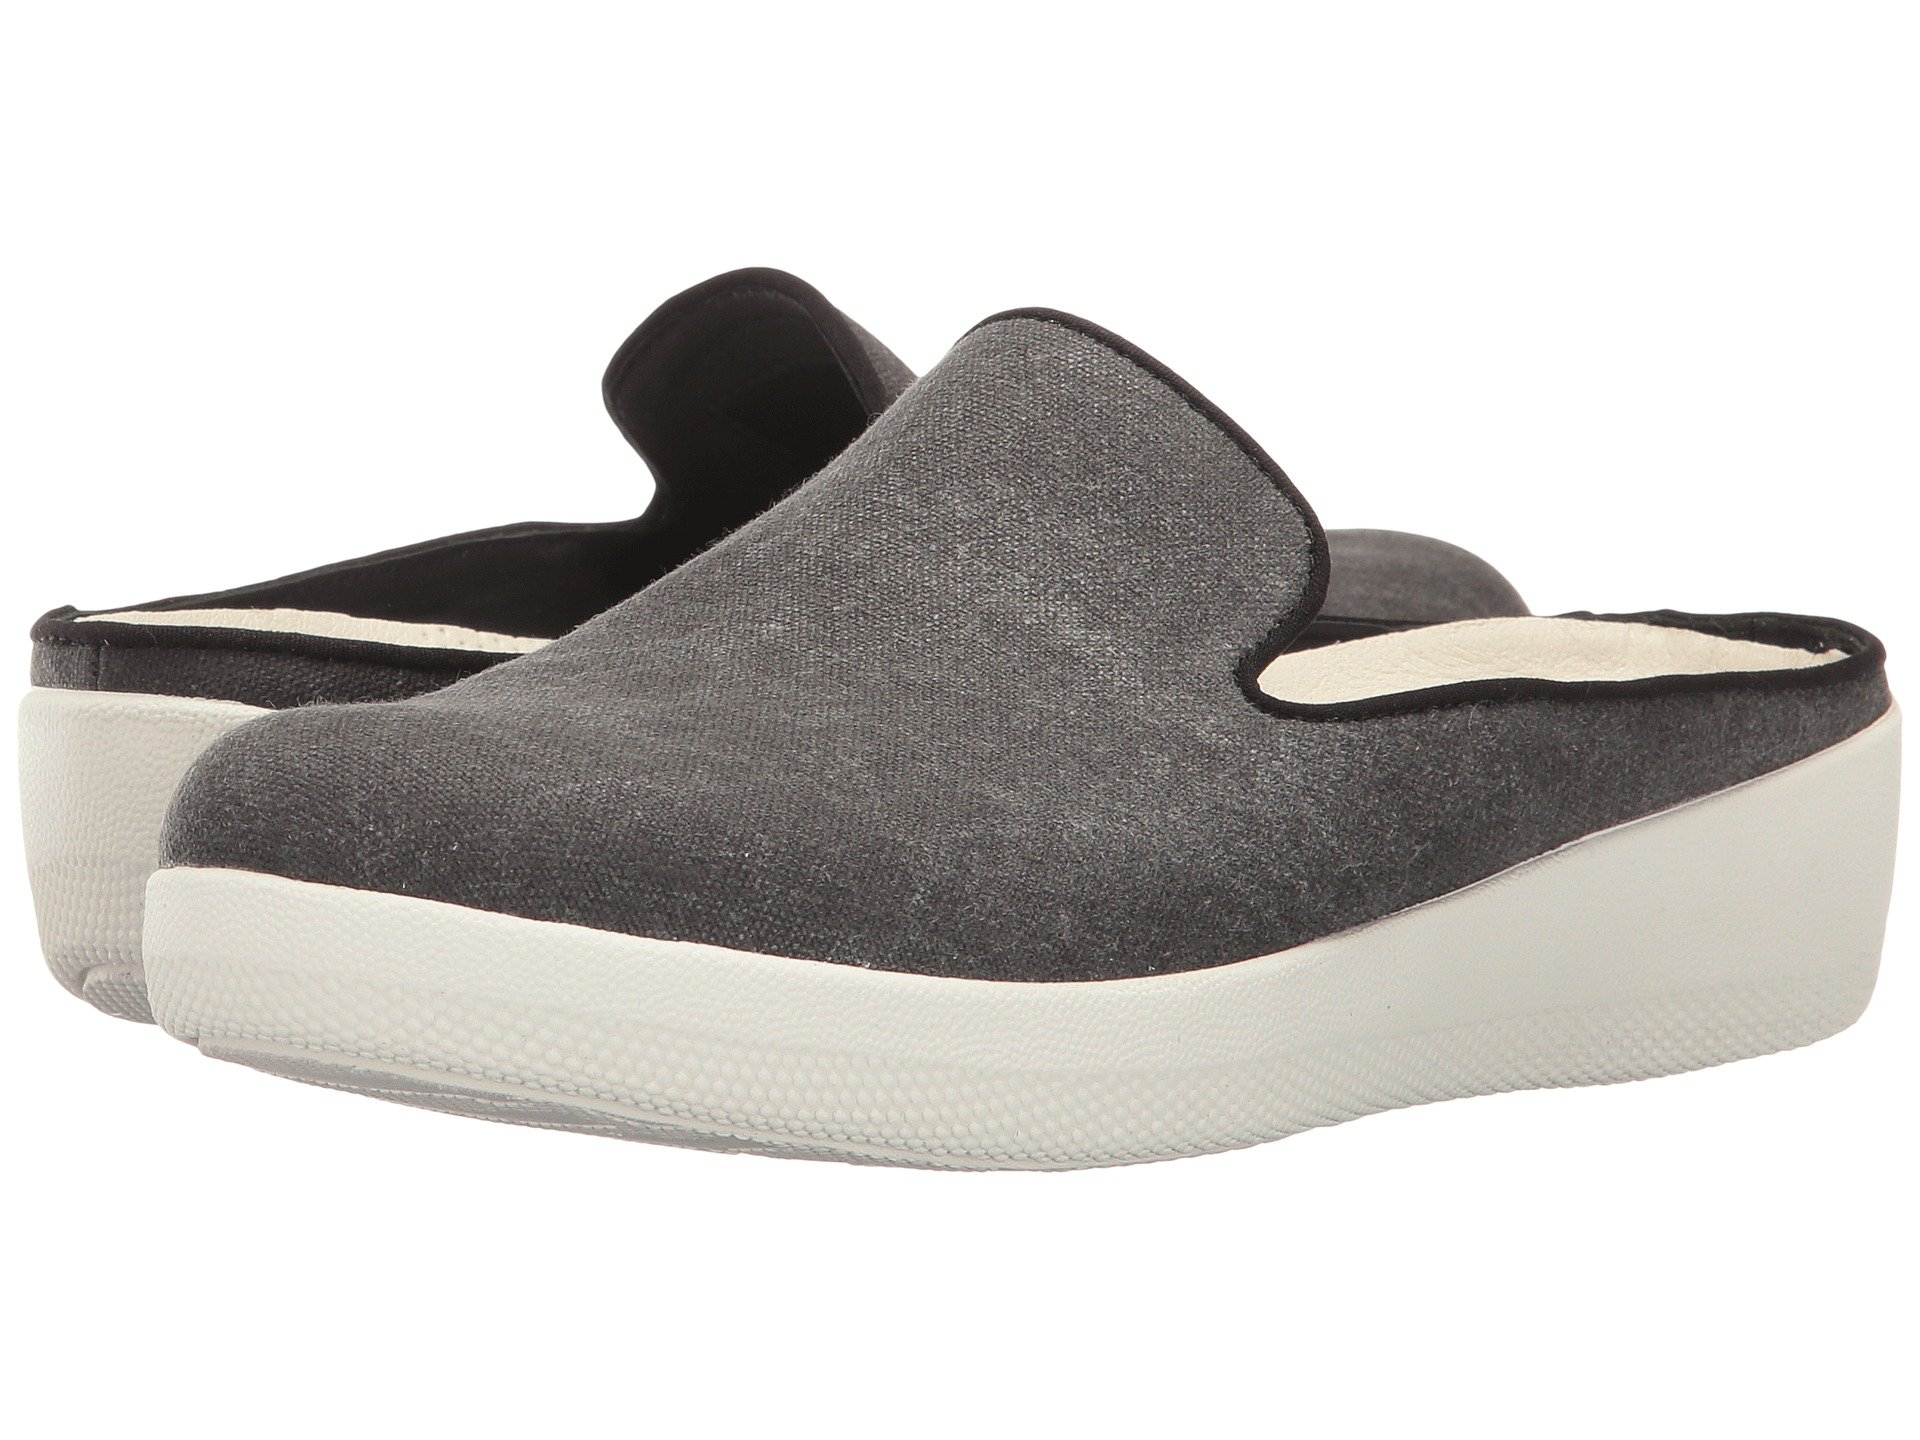 Superskate Slip-Ons